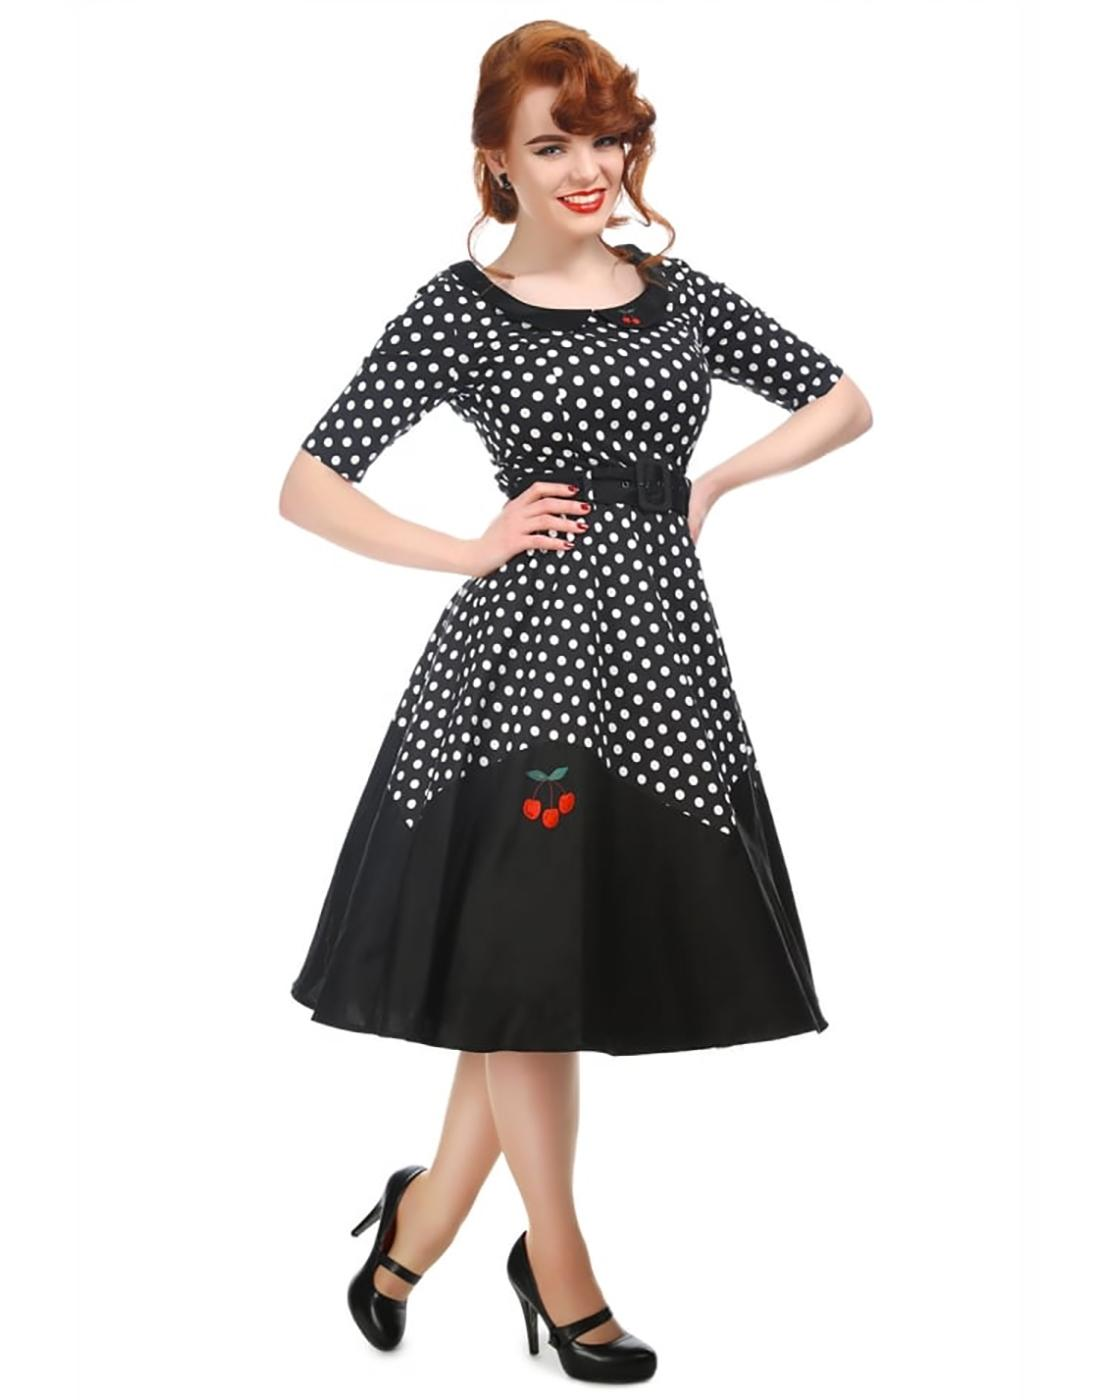 Cherry COLLECTIF Retro 50s Polka Dot Doll Dress